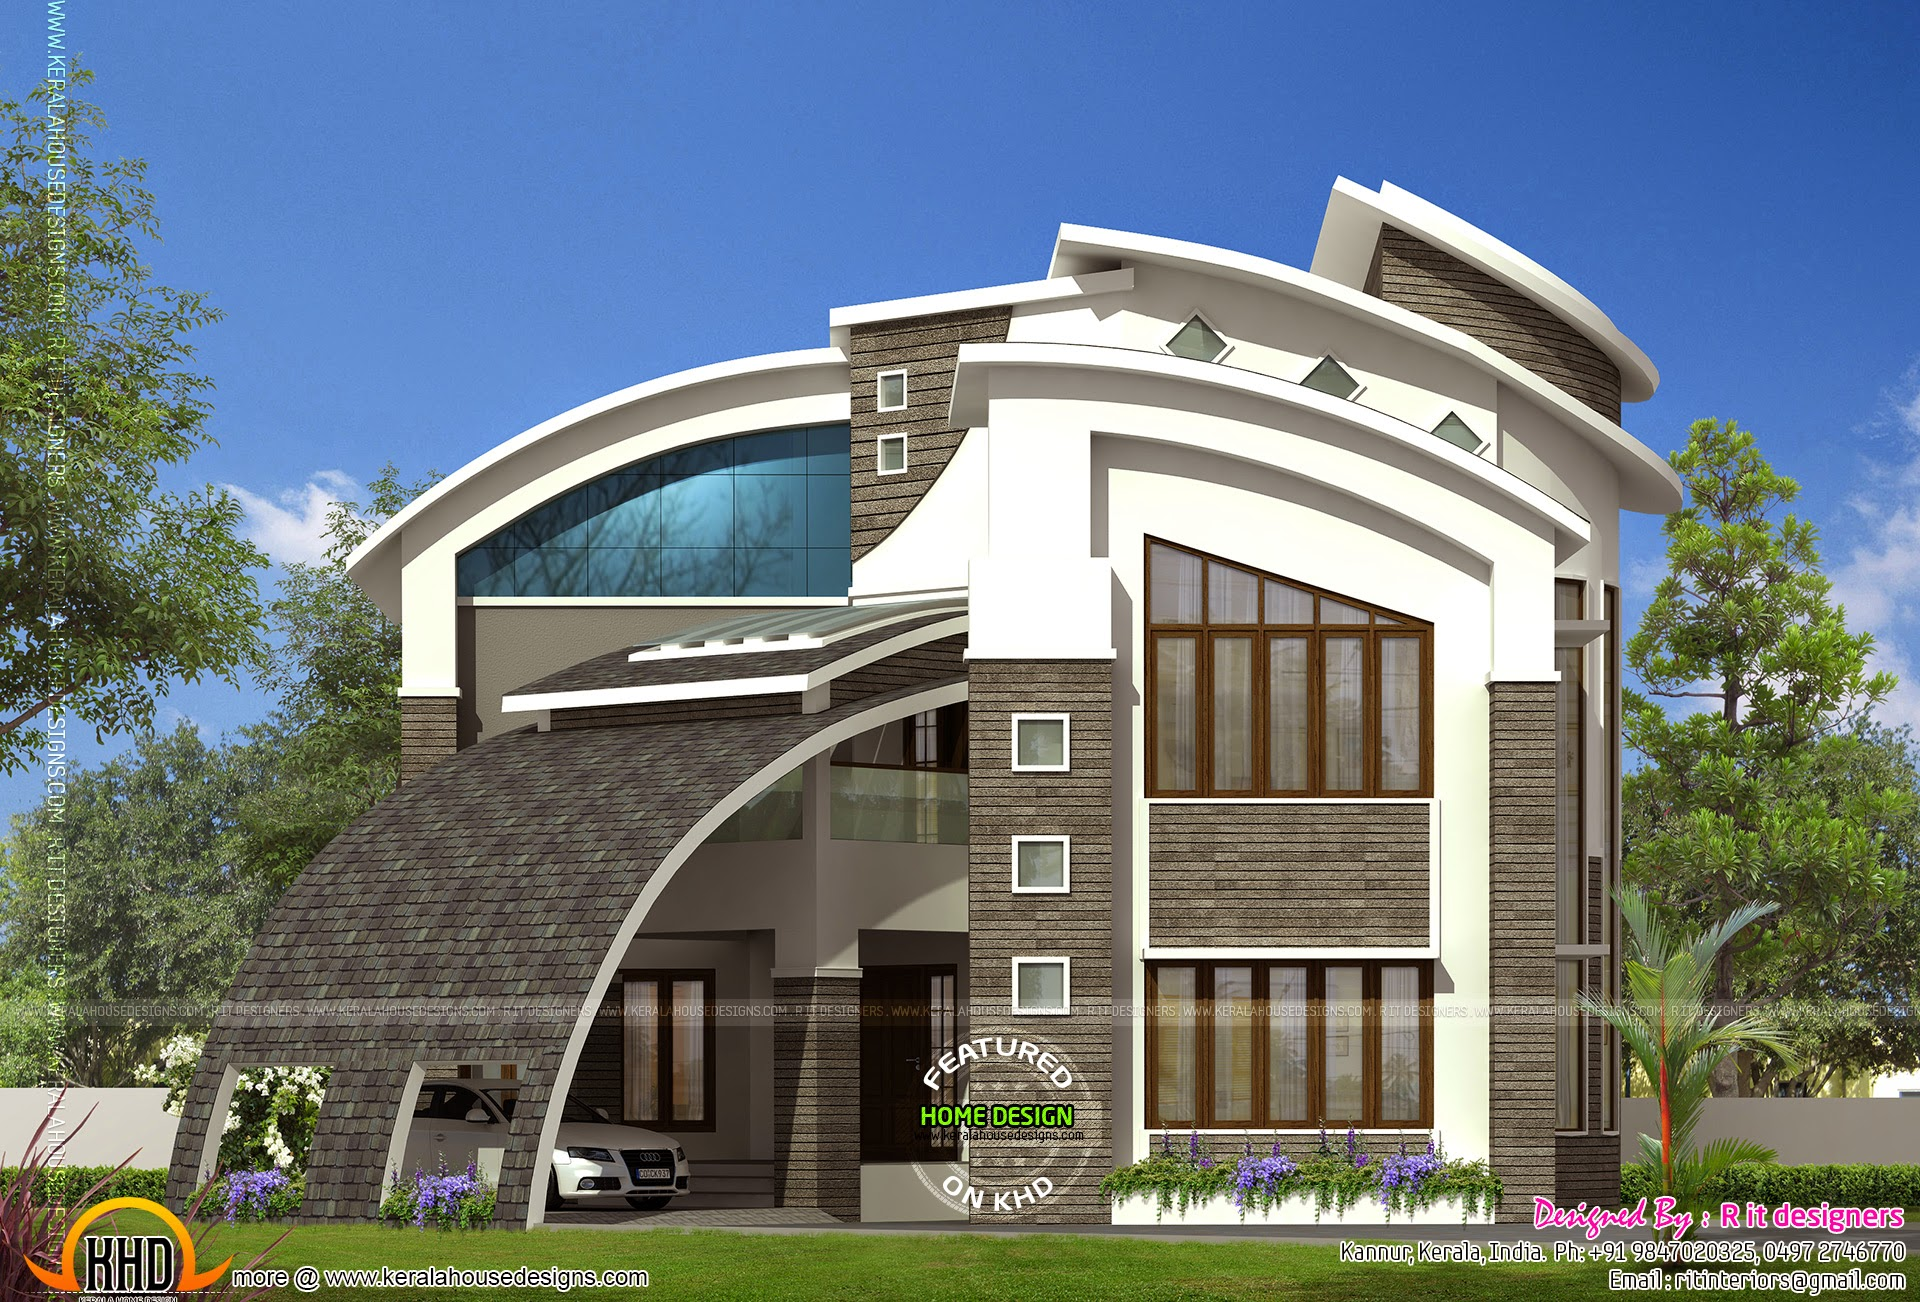 Most modern contemporary house design kerala home design for Modern tower house designs